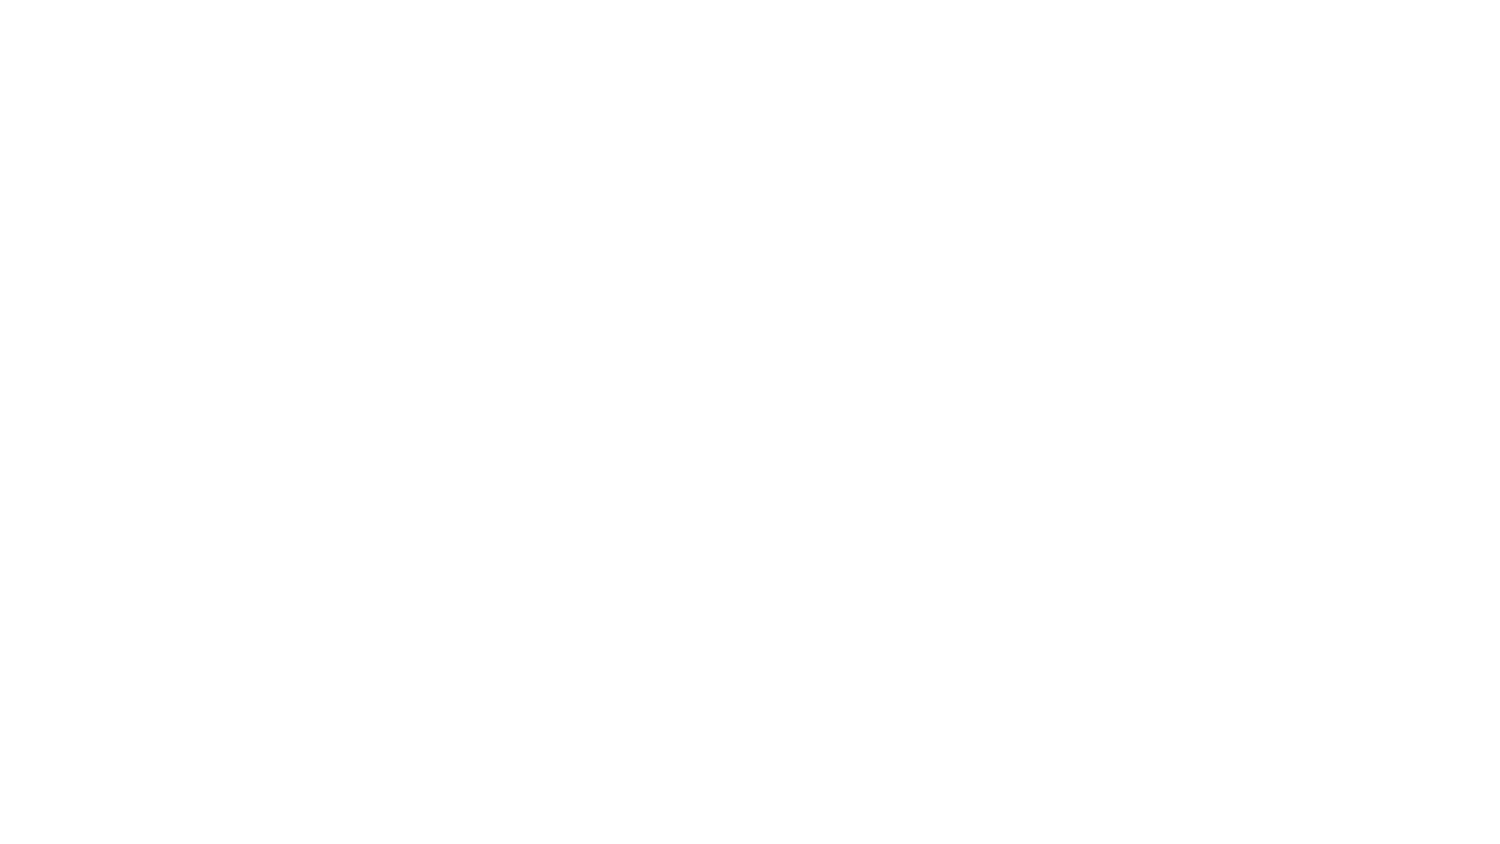 Alyssa Fisher Photography